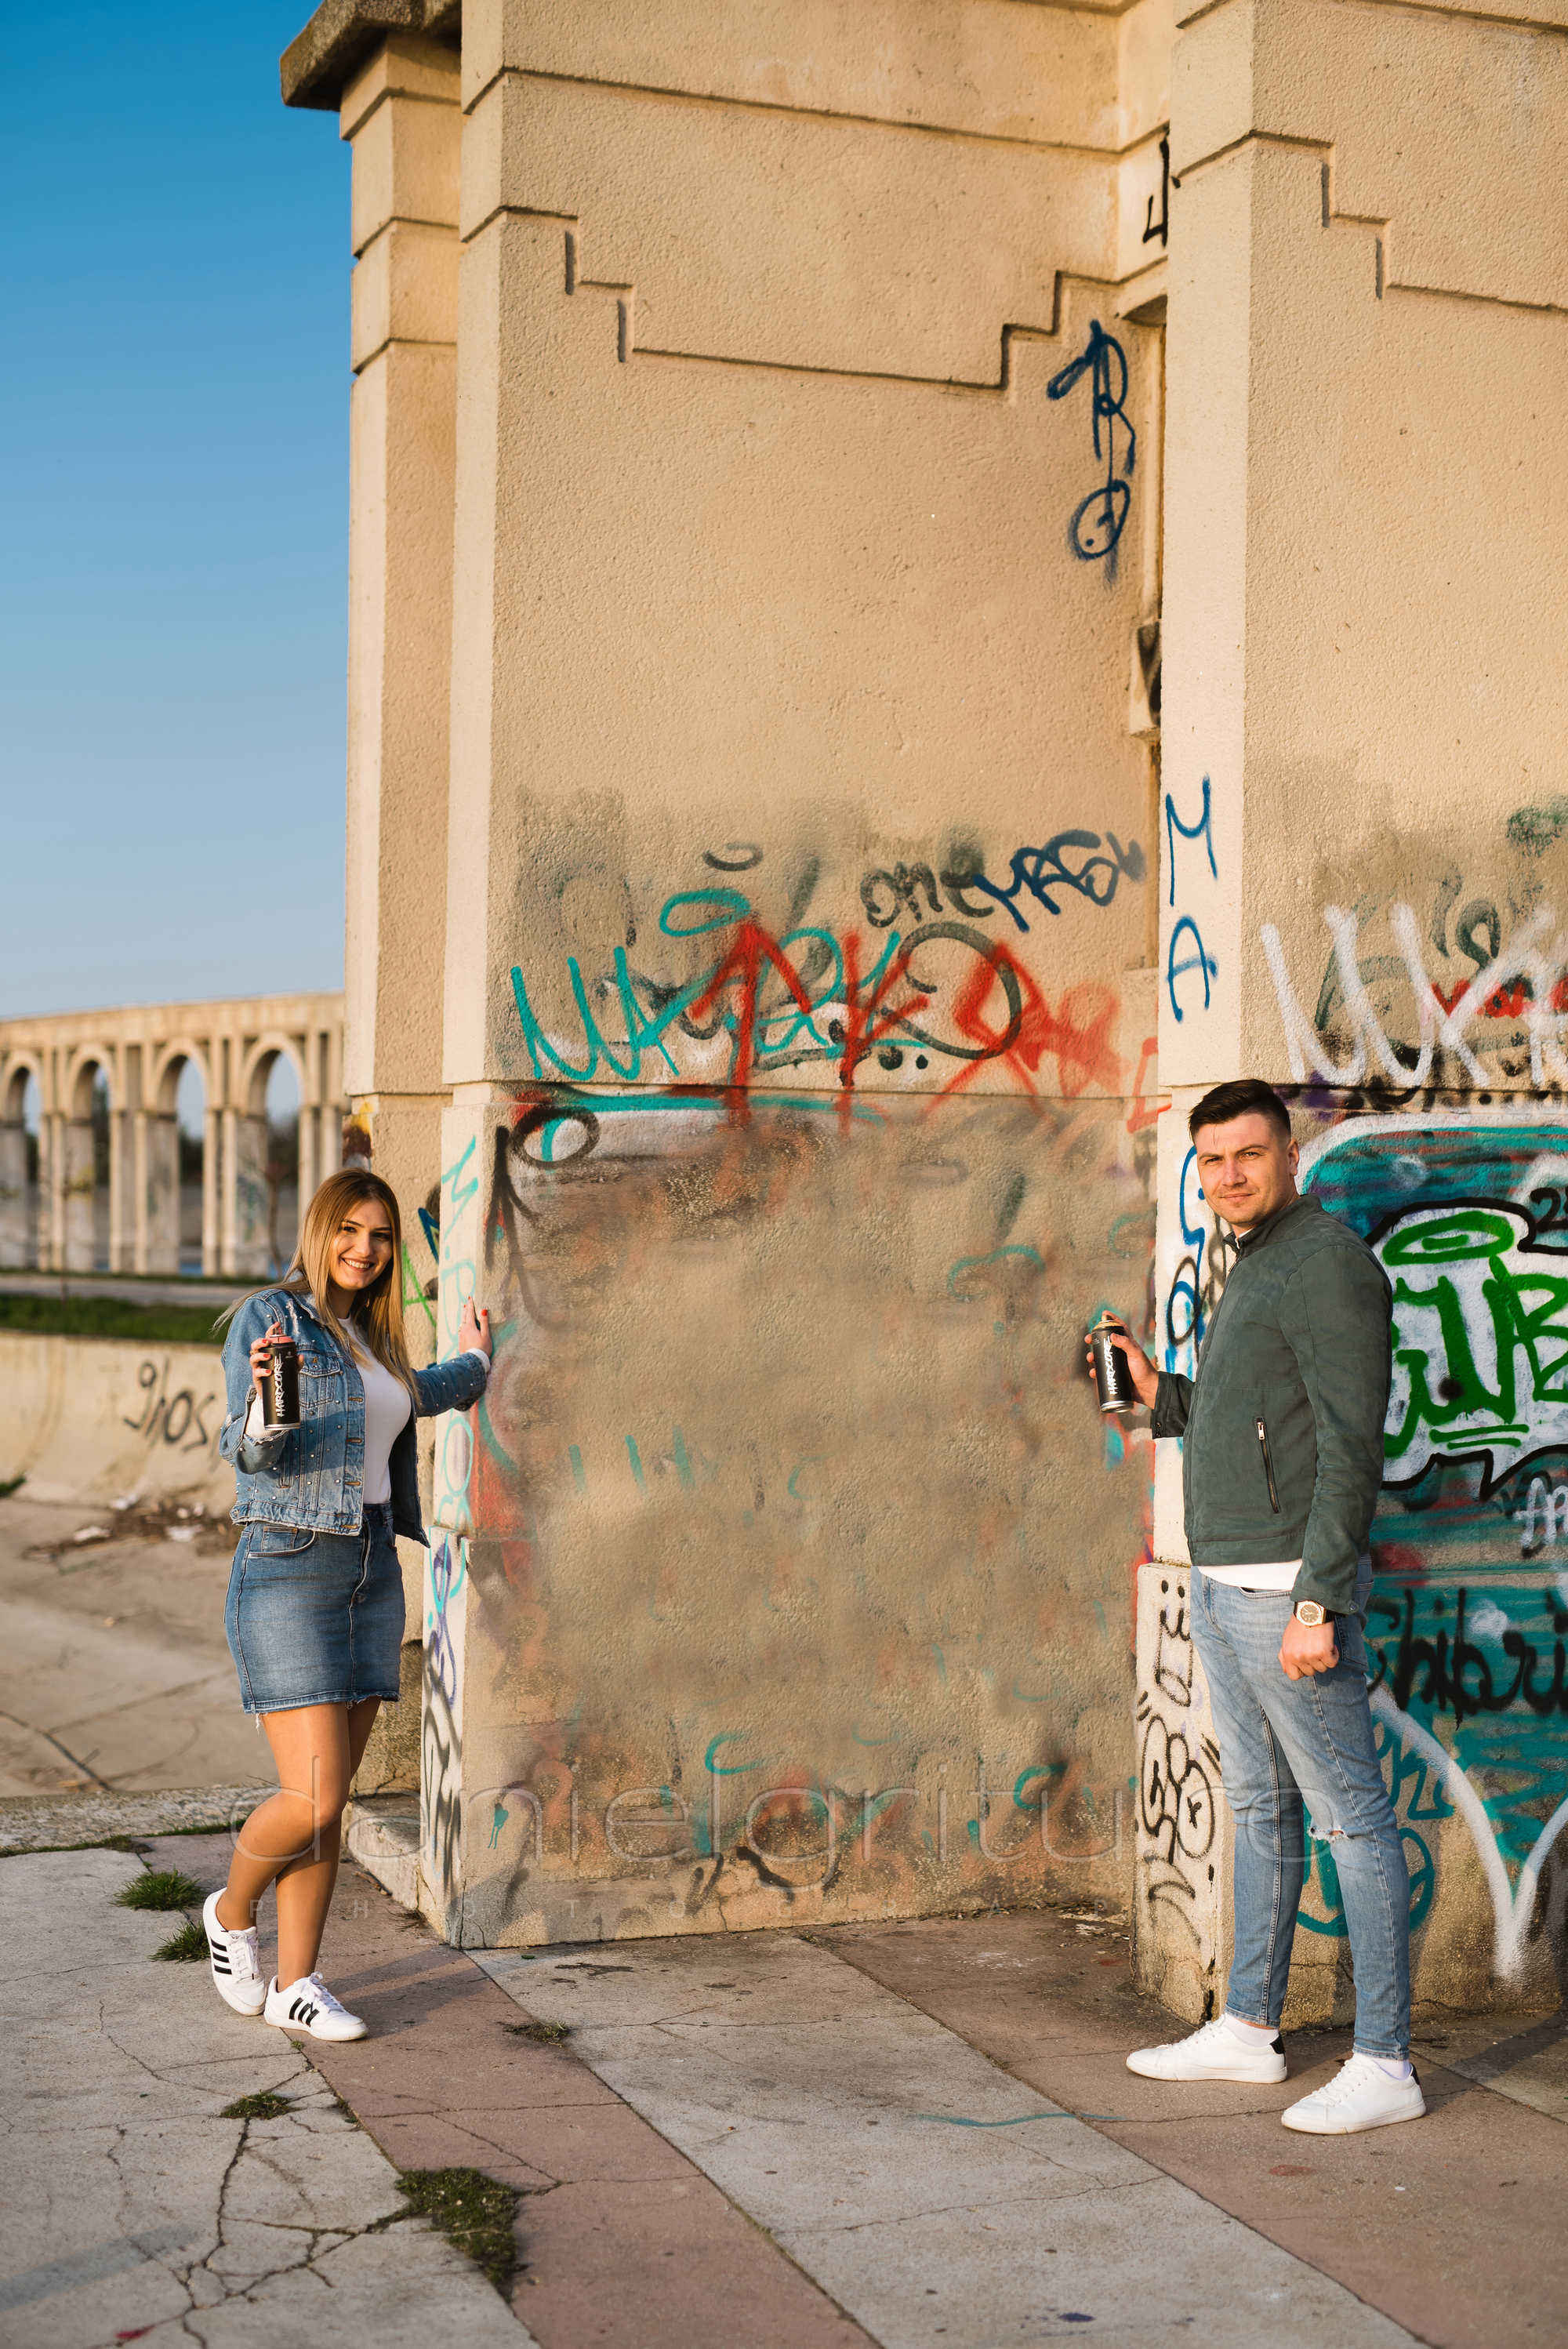 sesiune foto save the date graffiti insula lacul morii